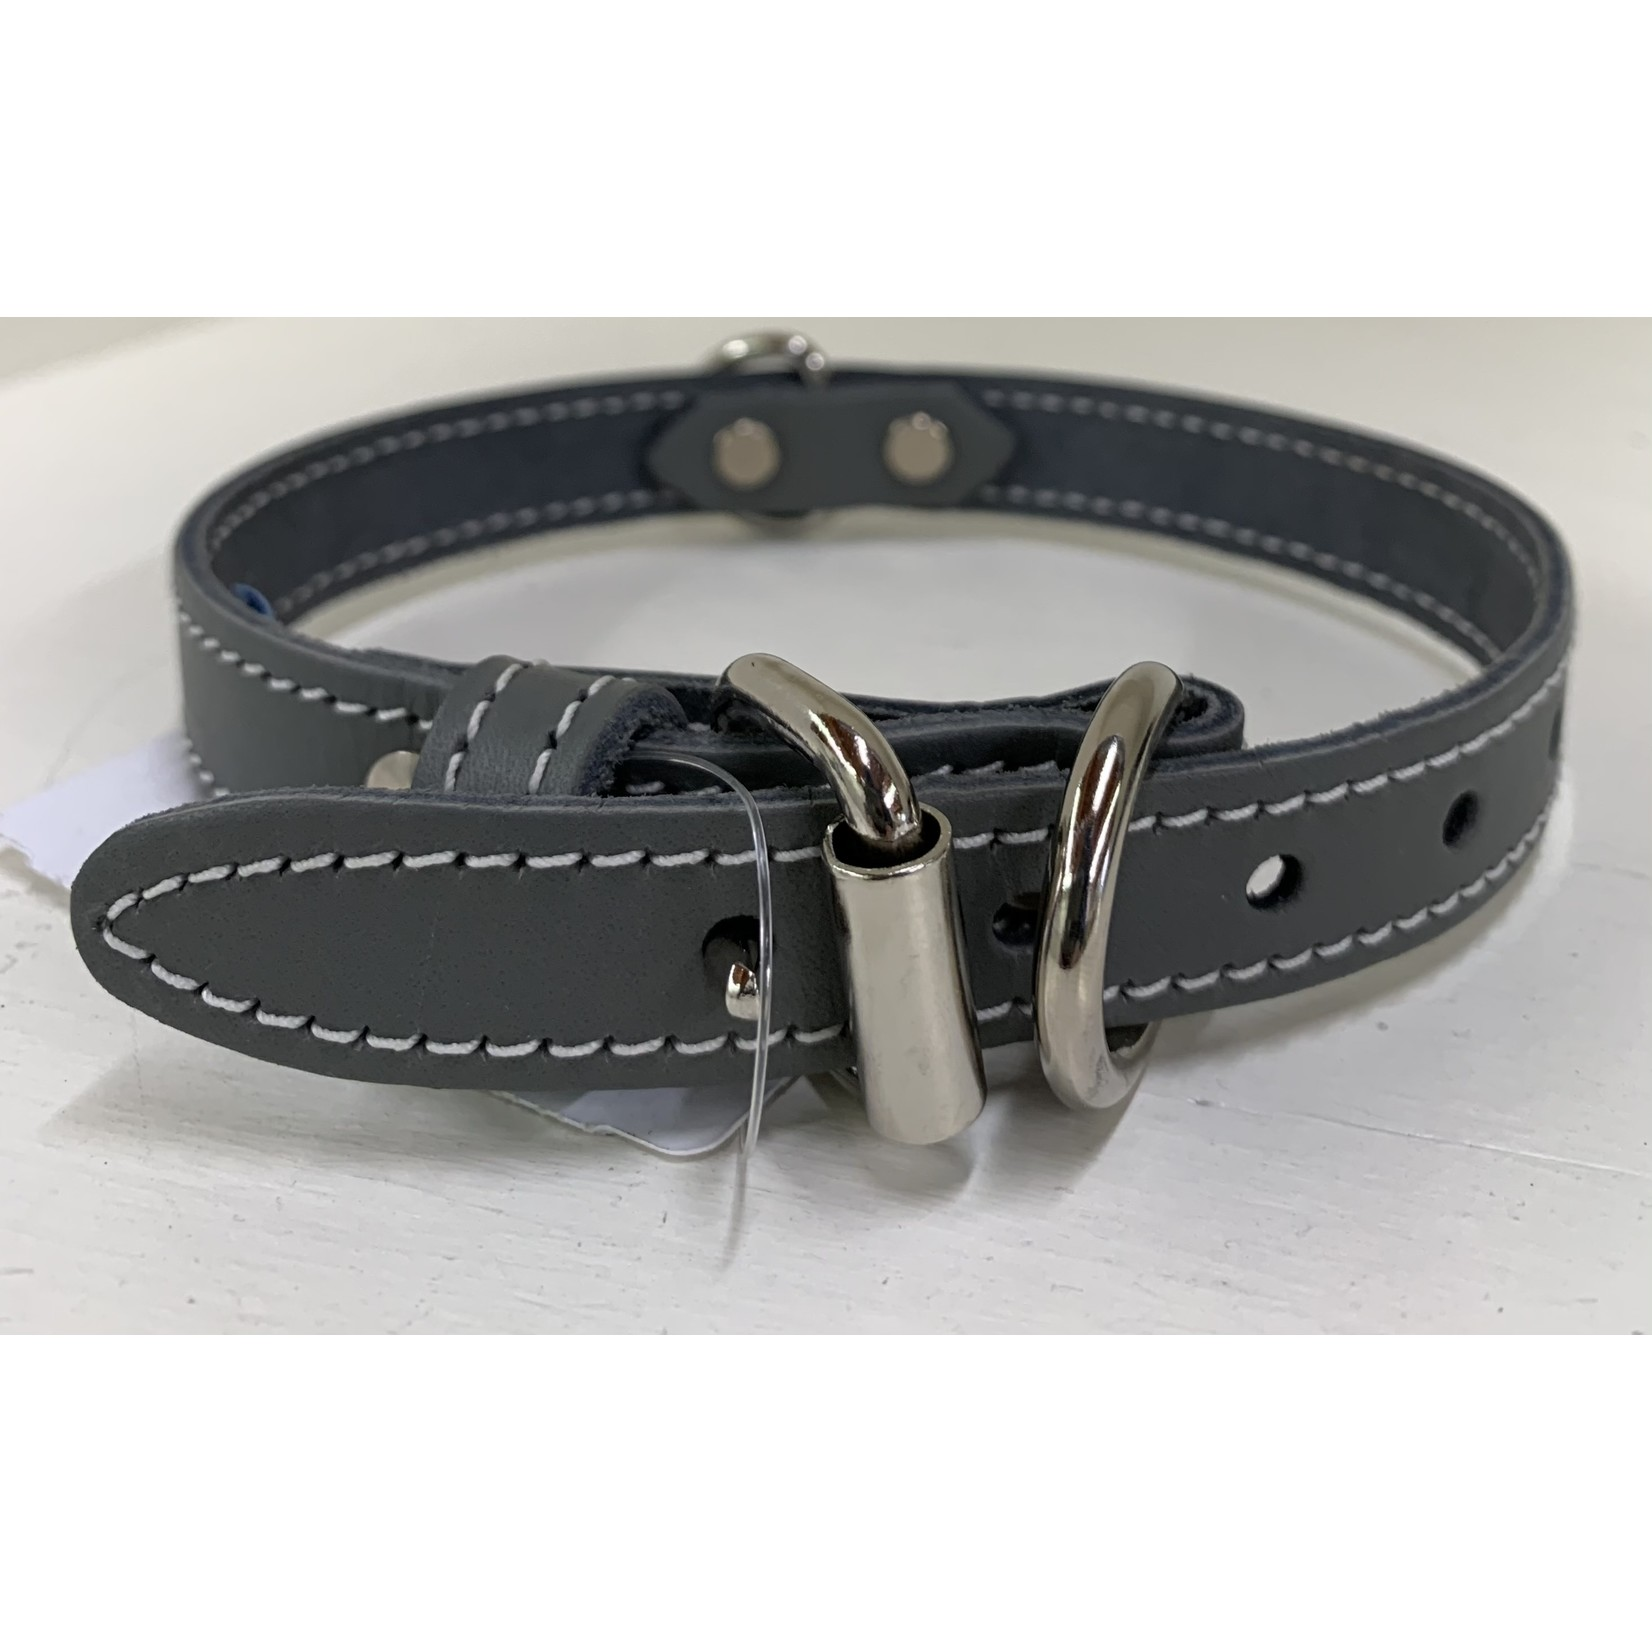 leather collar gray 3/4 x 18 in